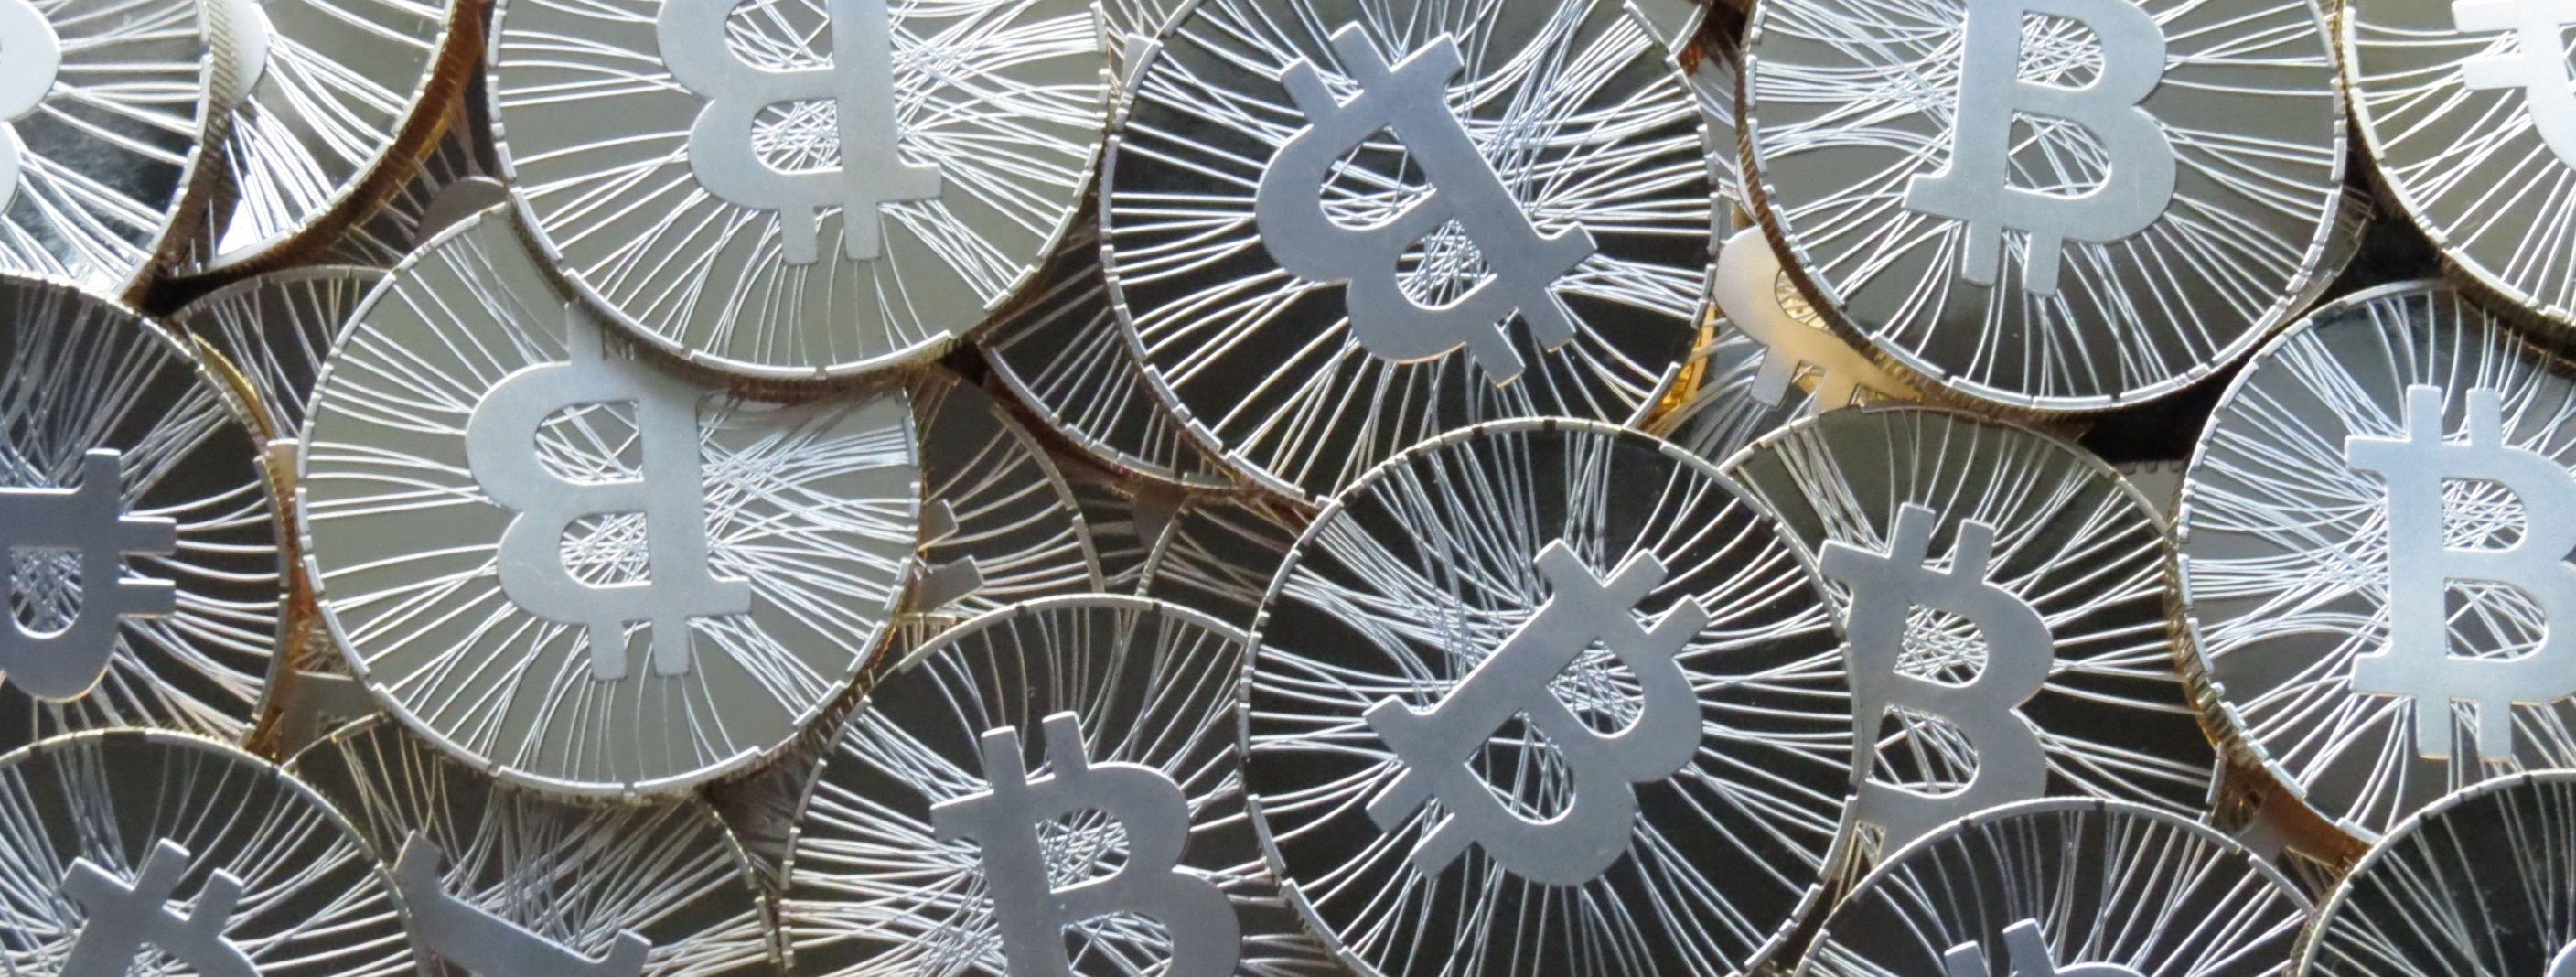 Bitcoin Touches Record $600 Valuation